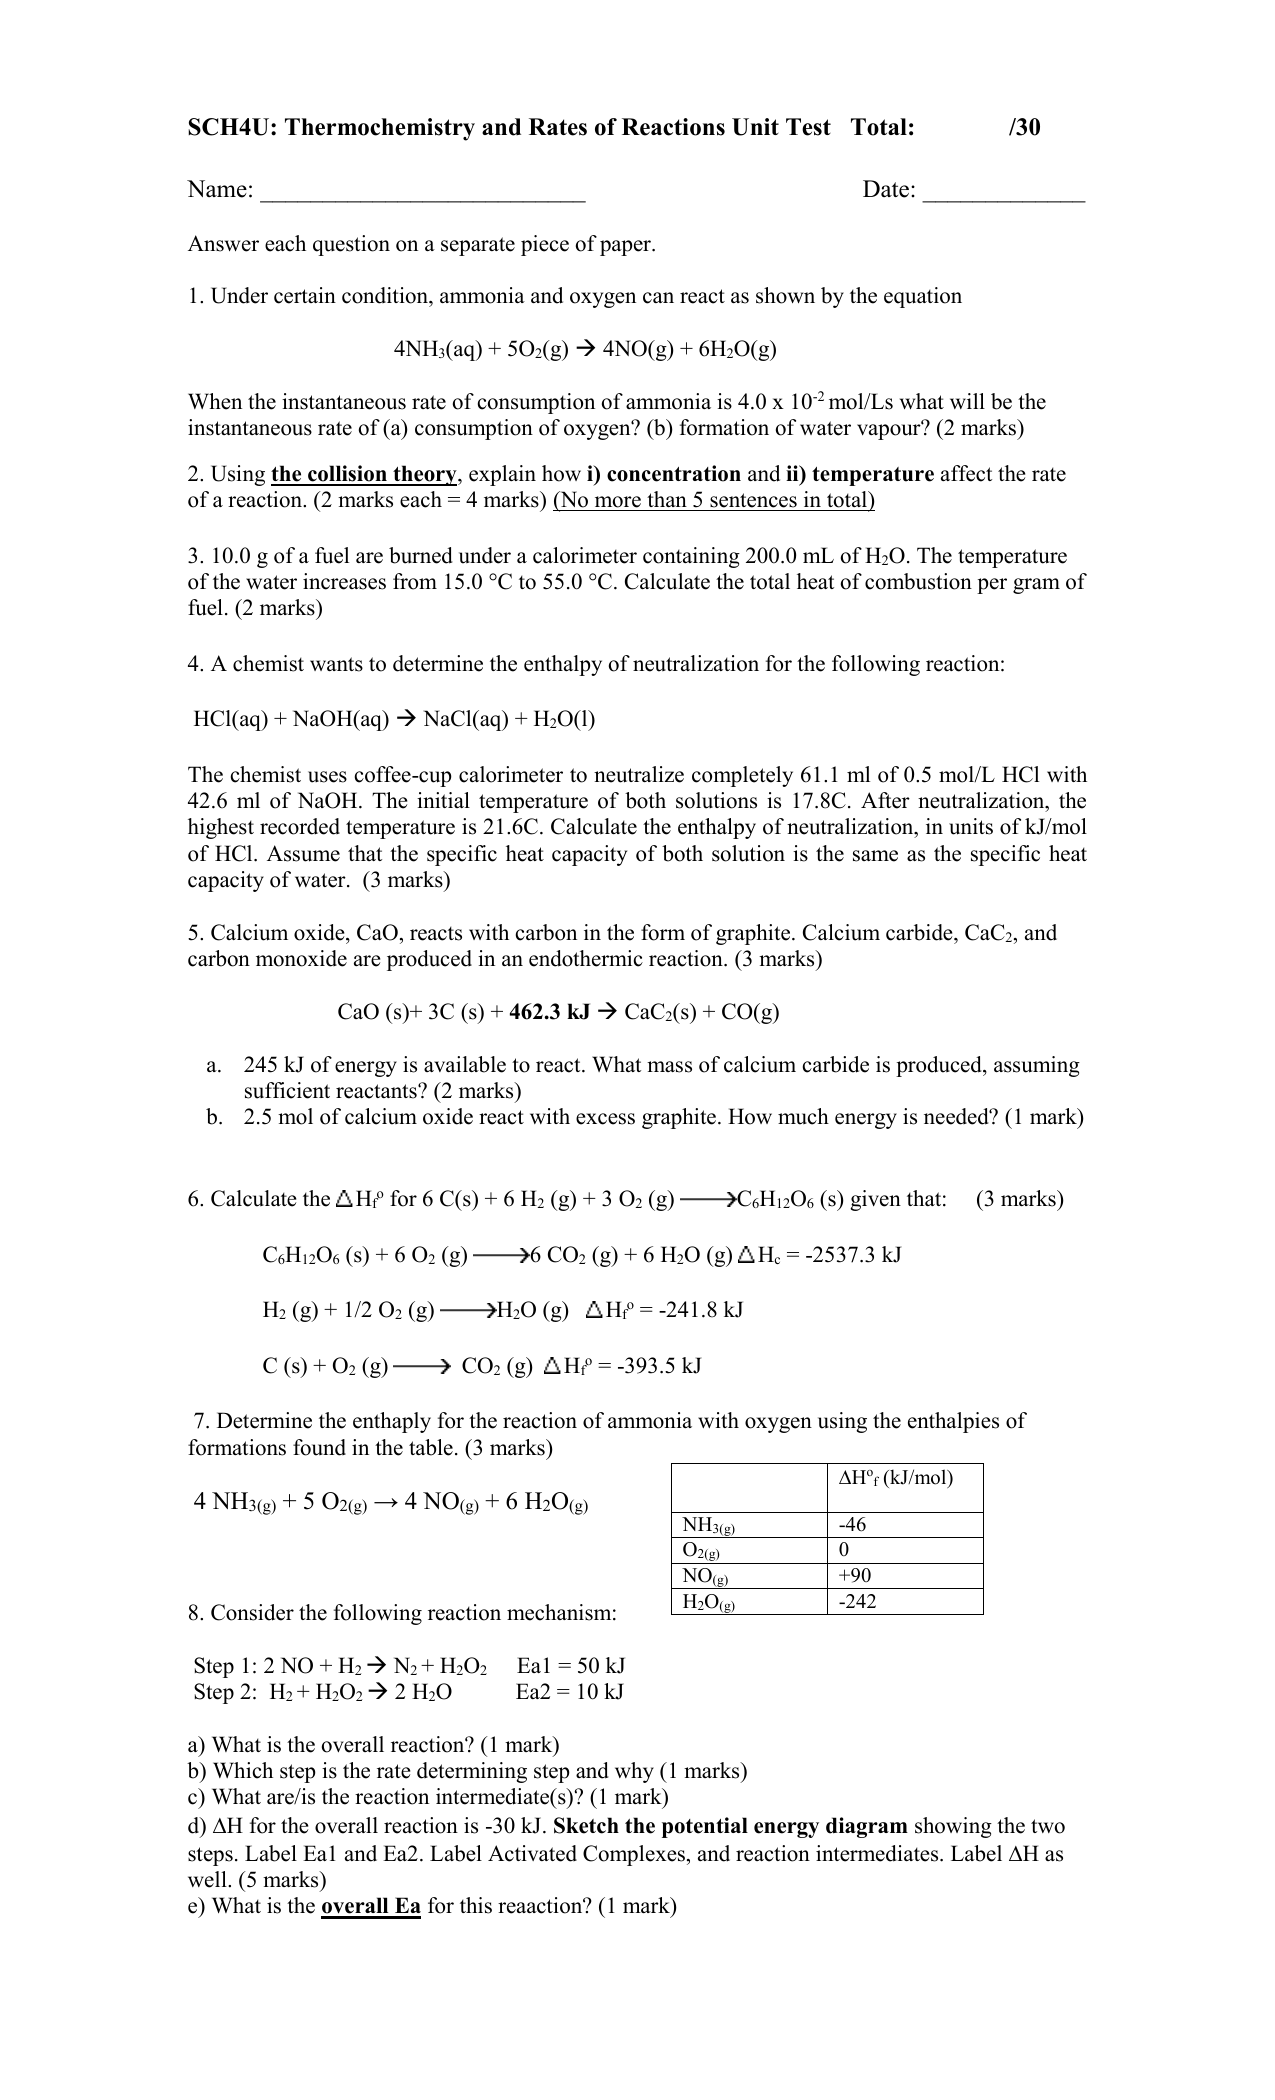 Thermo Rates Test